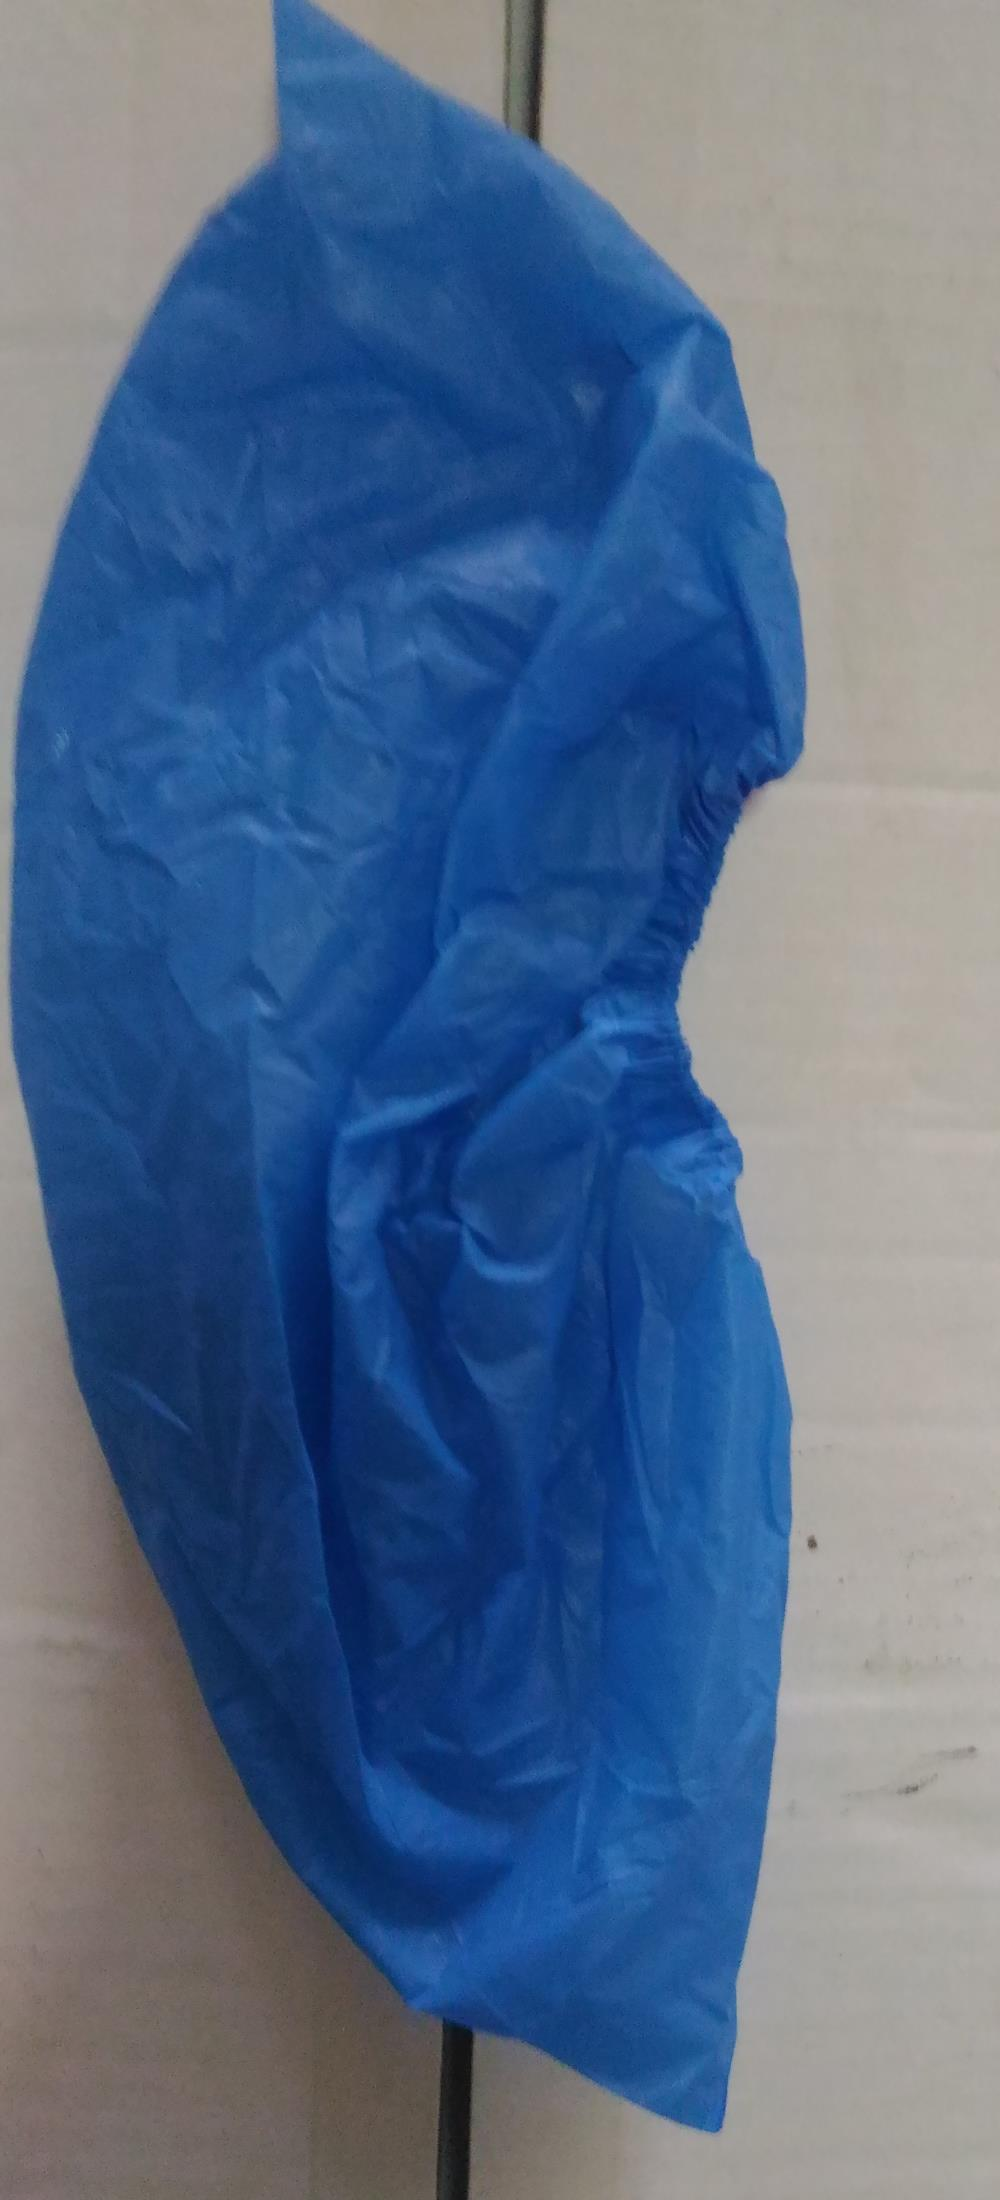 Shoe Cover 3G, 4G PE (Blue) ถุงคลุมรองเท้า,Shoe Cover 3G, 4G PE (Blue) ถุงคลุมรองเท้า,Shoe Cover 3G, 4G PE (Blue) ถุงคลุมรองเท้า,Instruments and Controls/Laboratory Equipment